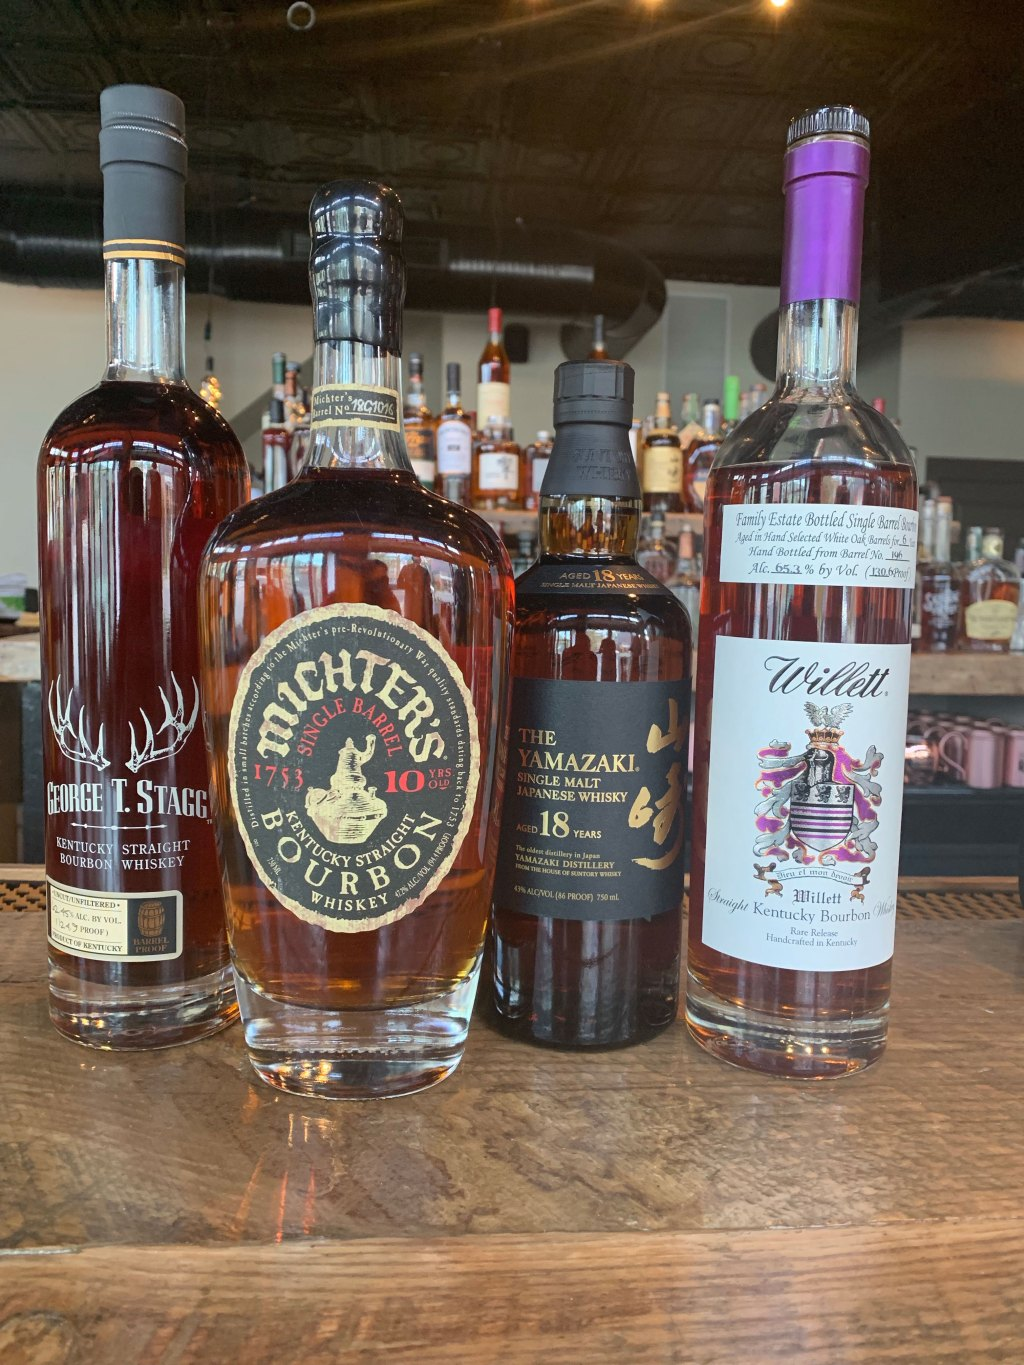 The bar will feature more than 300 types of whiskey. (Clyde McGrady/CQ Roll Call)